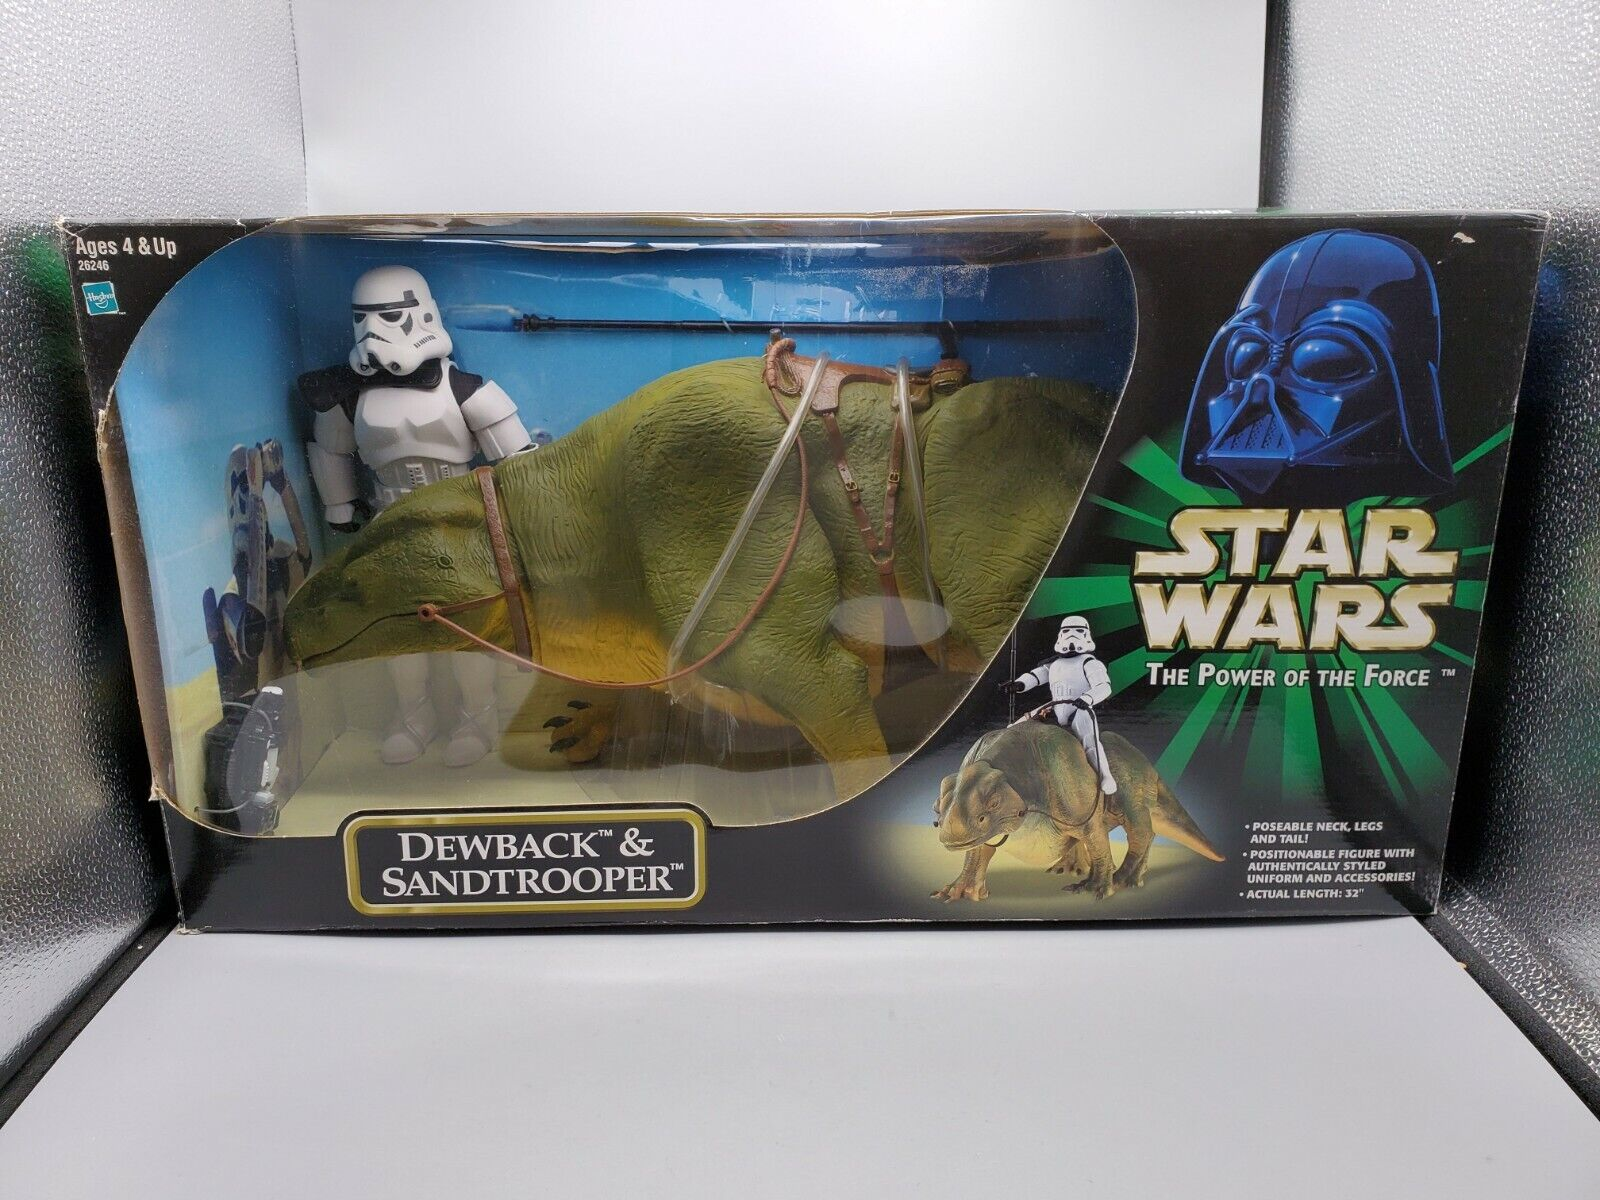 2000 Hasbro estrella guerras The energia of the Force gree Dewback & Setrooper 32 lungo